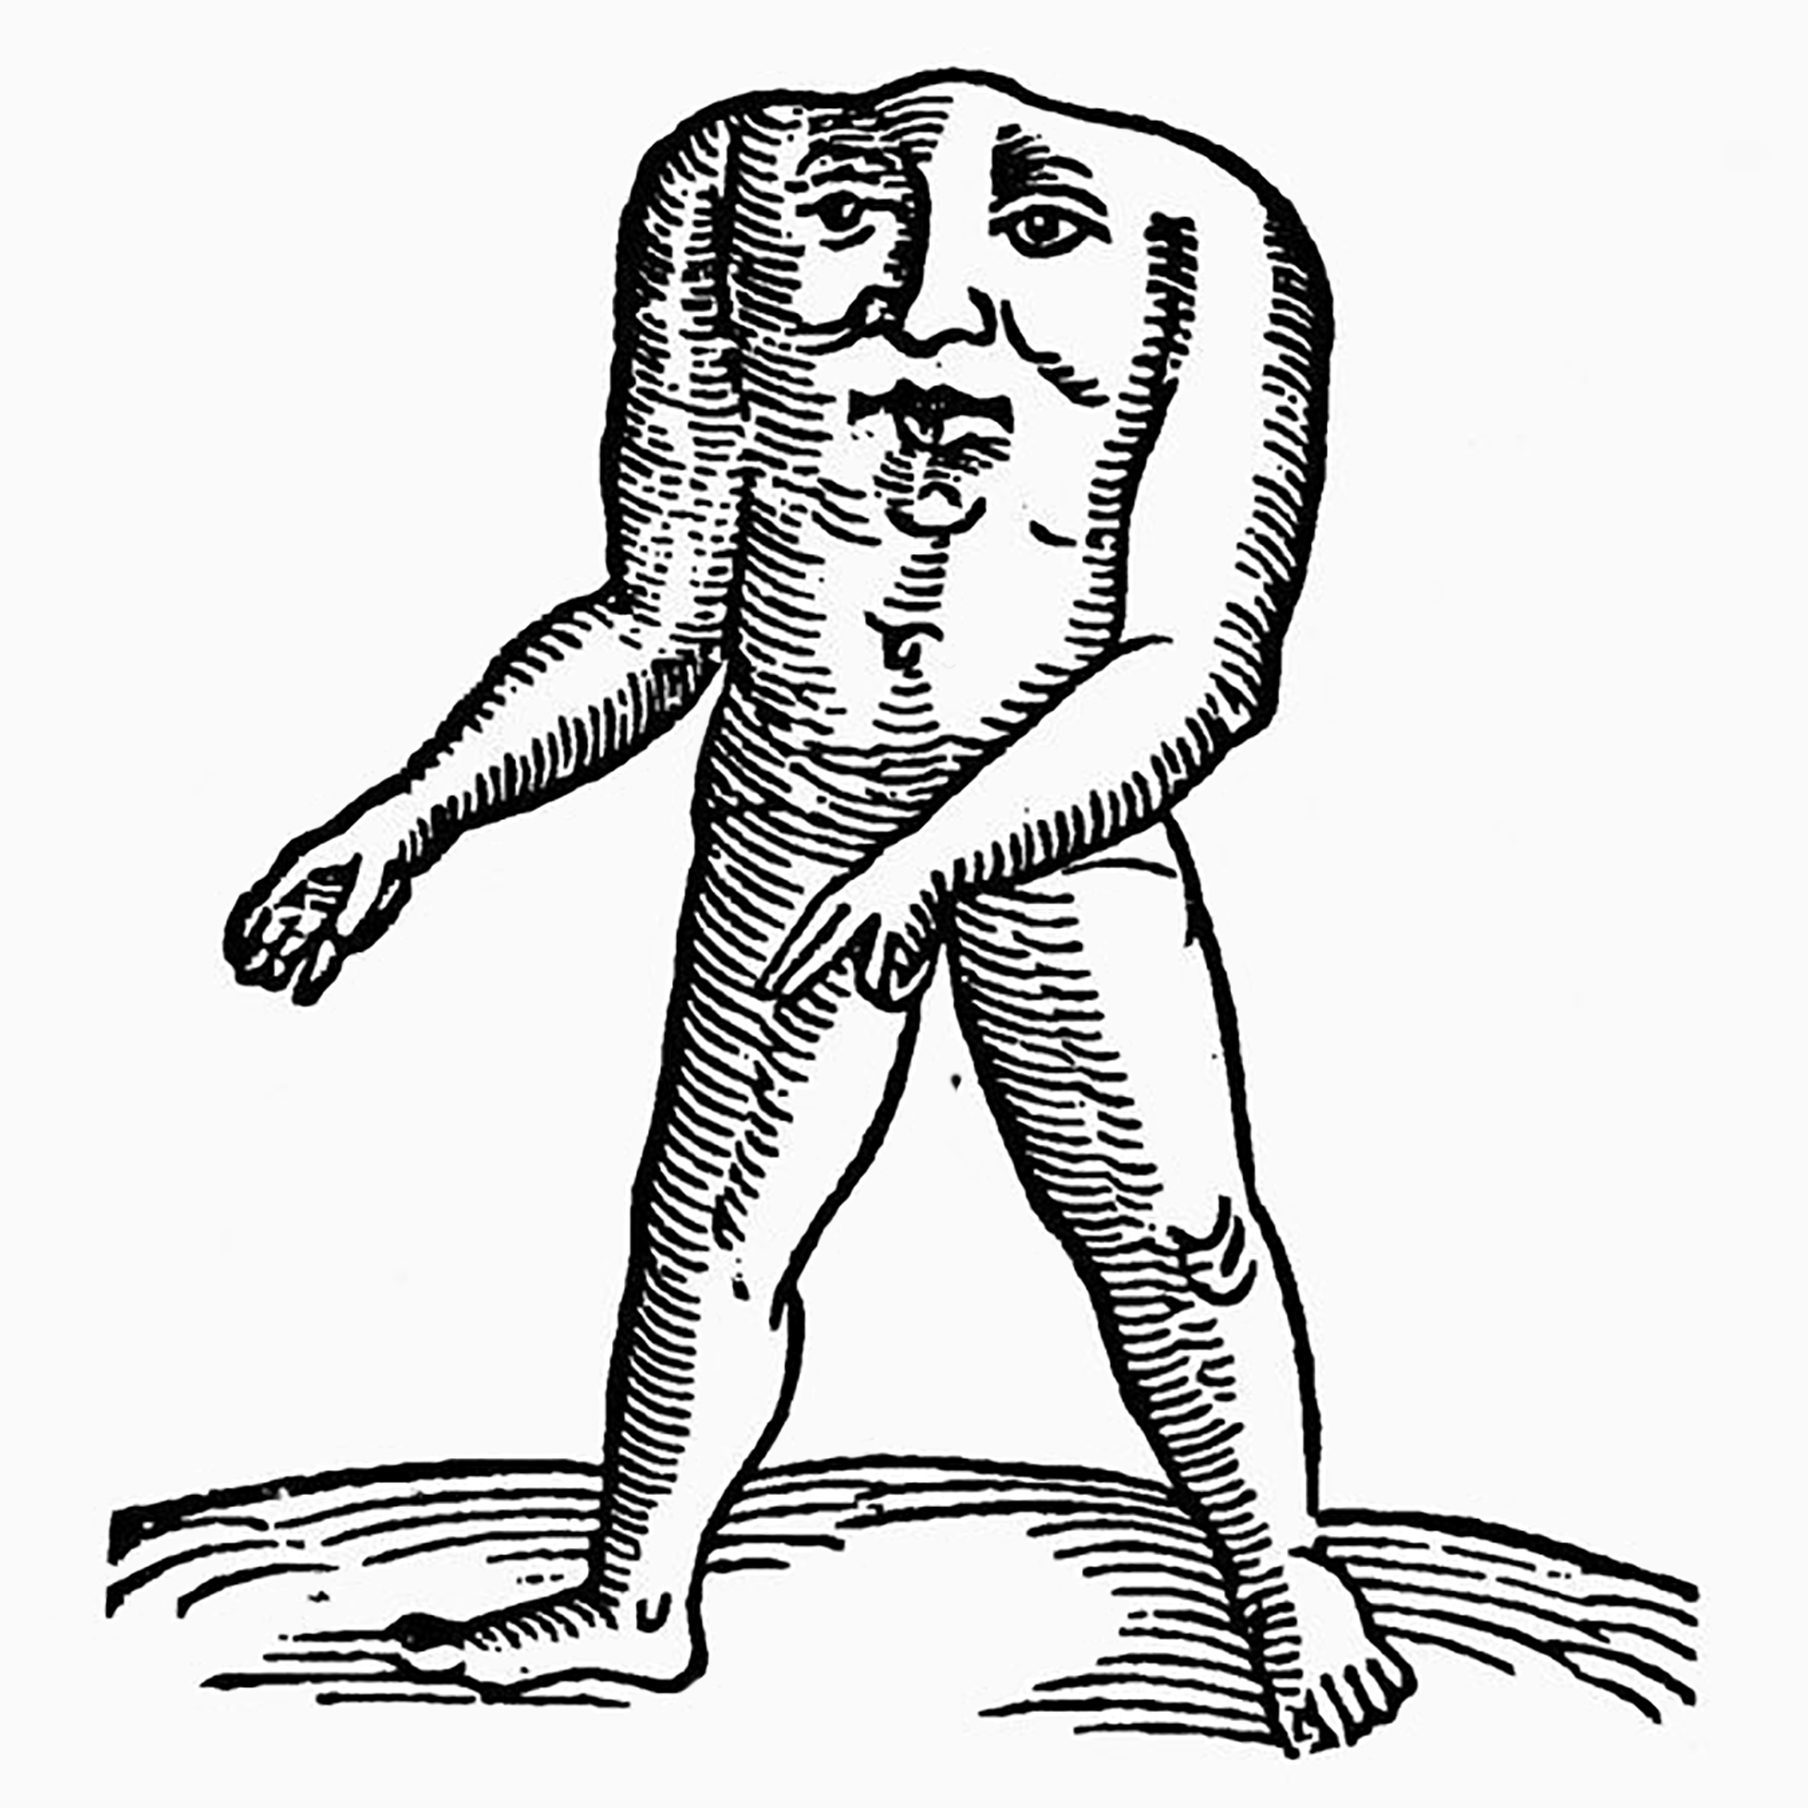 HEADLESS MAN, 1557. Woodcut from the 'Prodigiorum' of Conrad Lycosthenes, 1557.